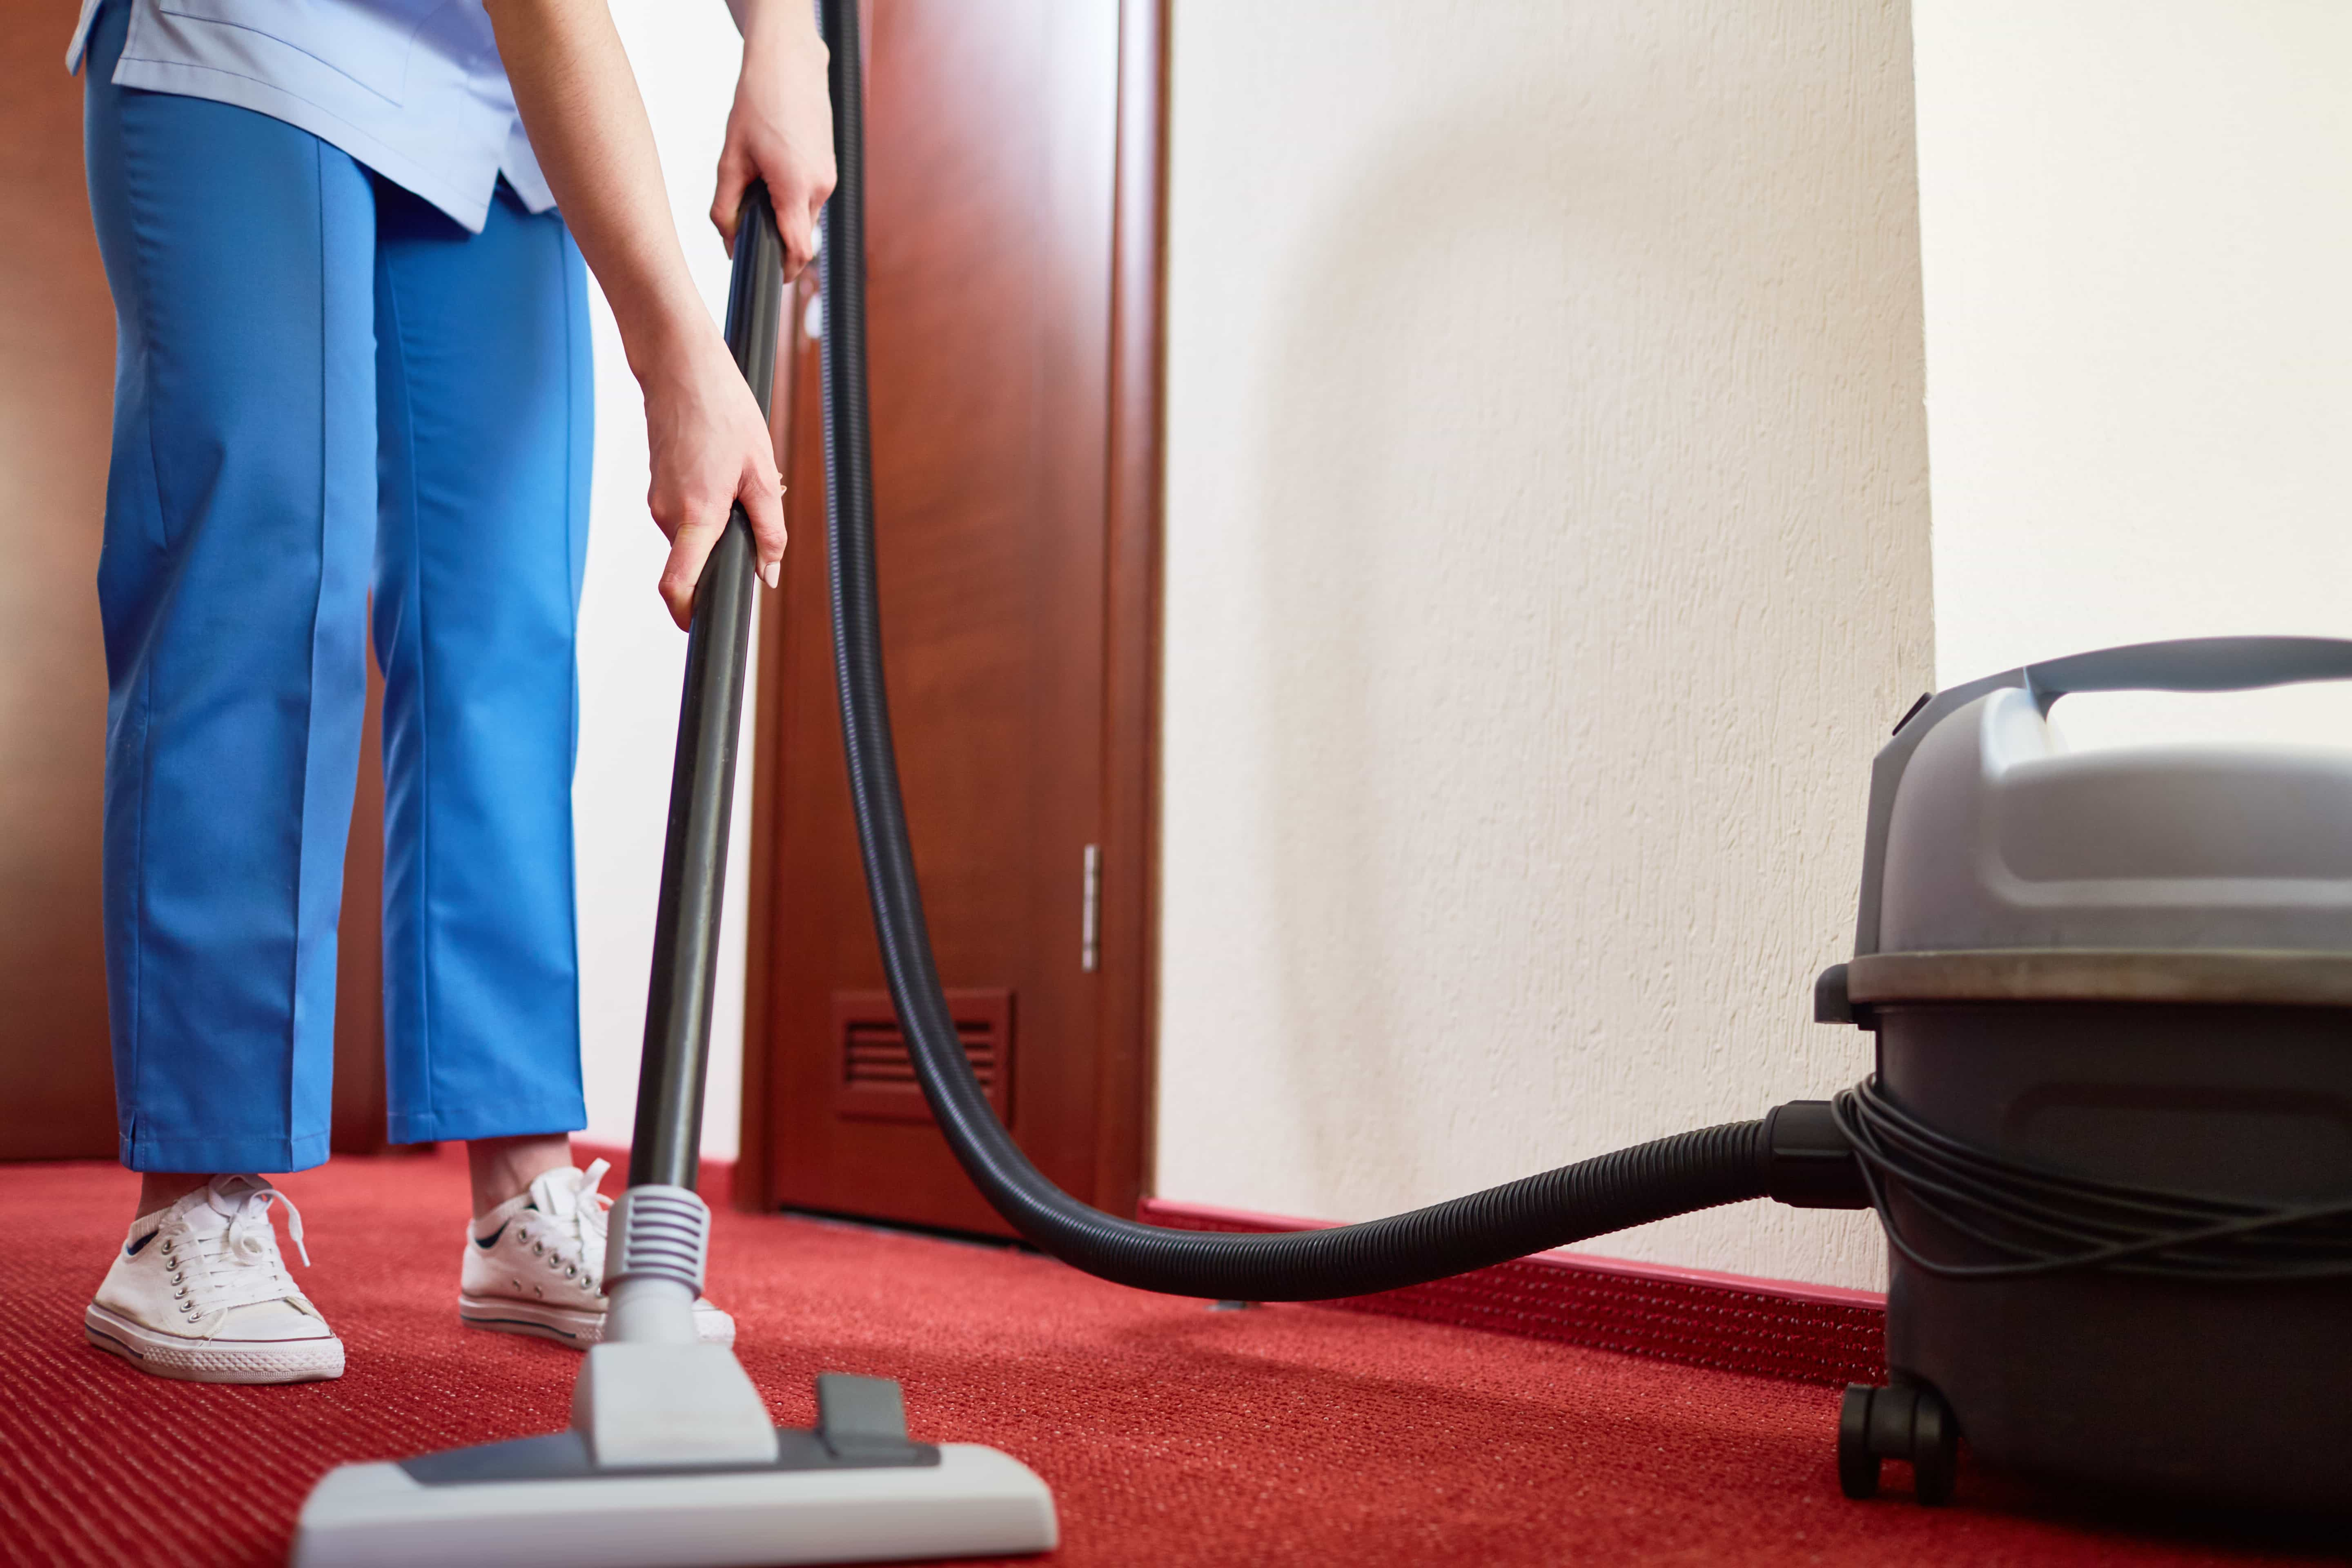 Commercial cleaner vacuuming carper in hotel room